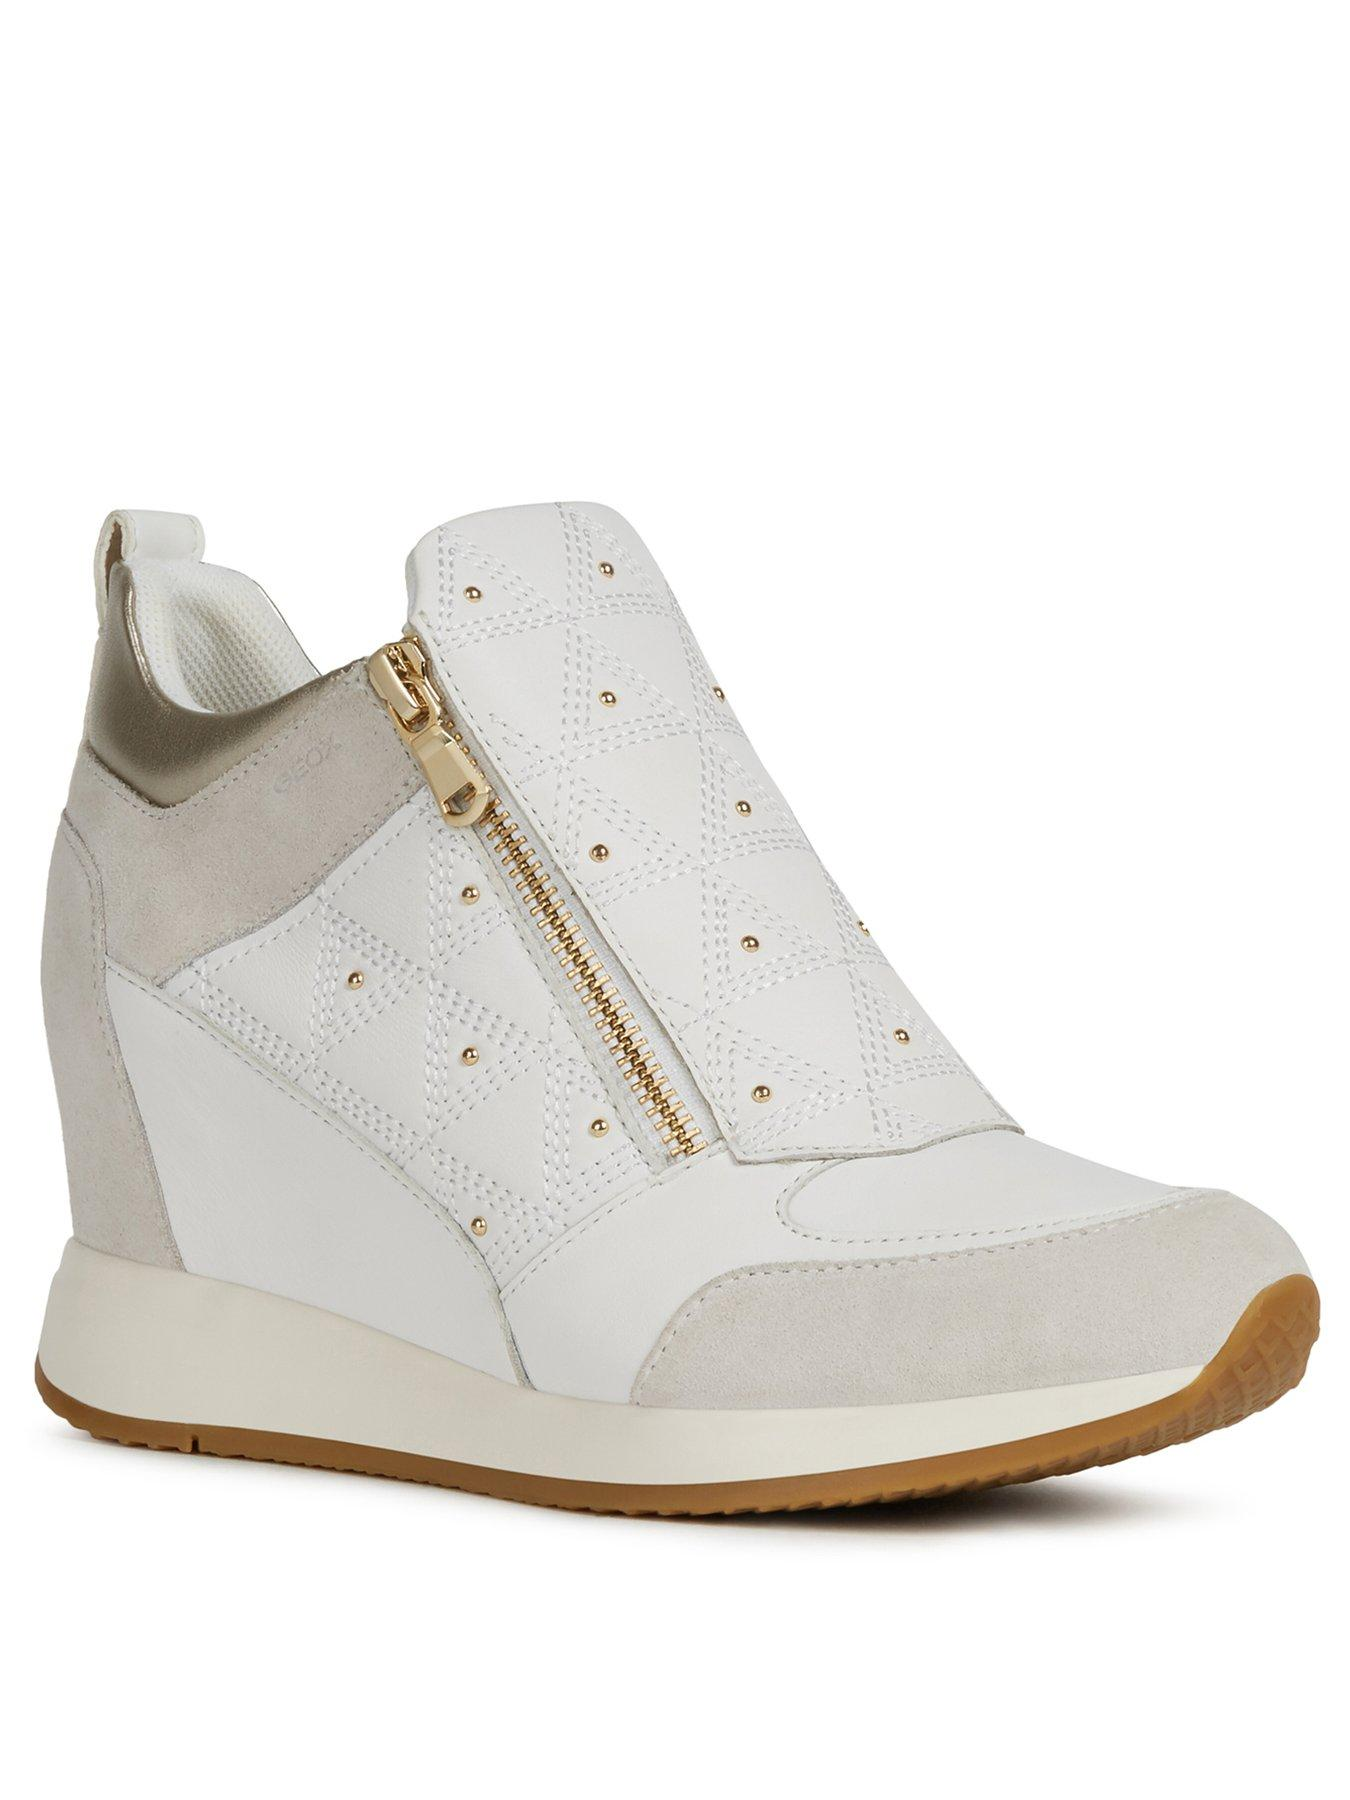 Residencia Conexión maestría  Women's Shoes Geox D Carum C Womens Nappa Leather Wedge Fashion Shoes  Sneaker-Boots All White Clothing, Shoes & Accessories lio.mx